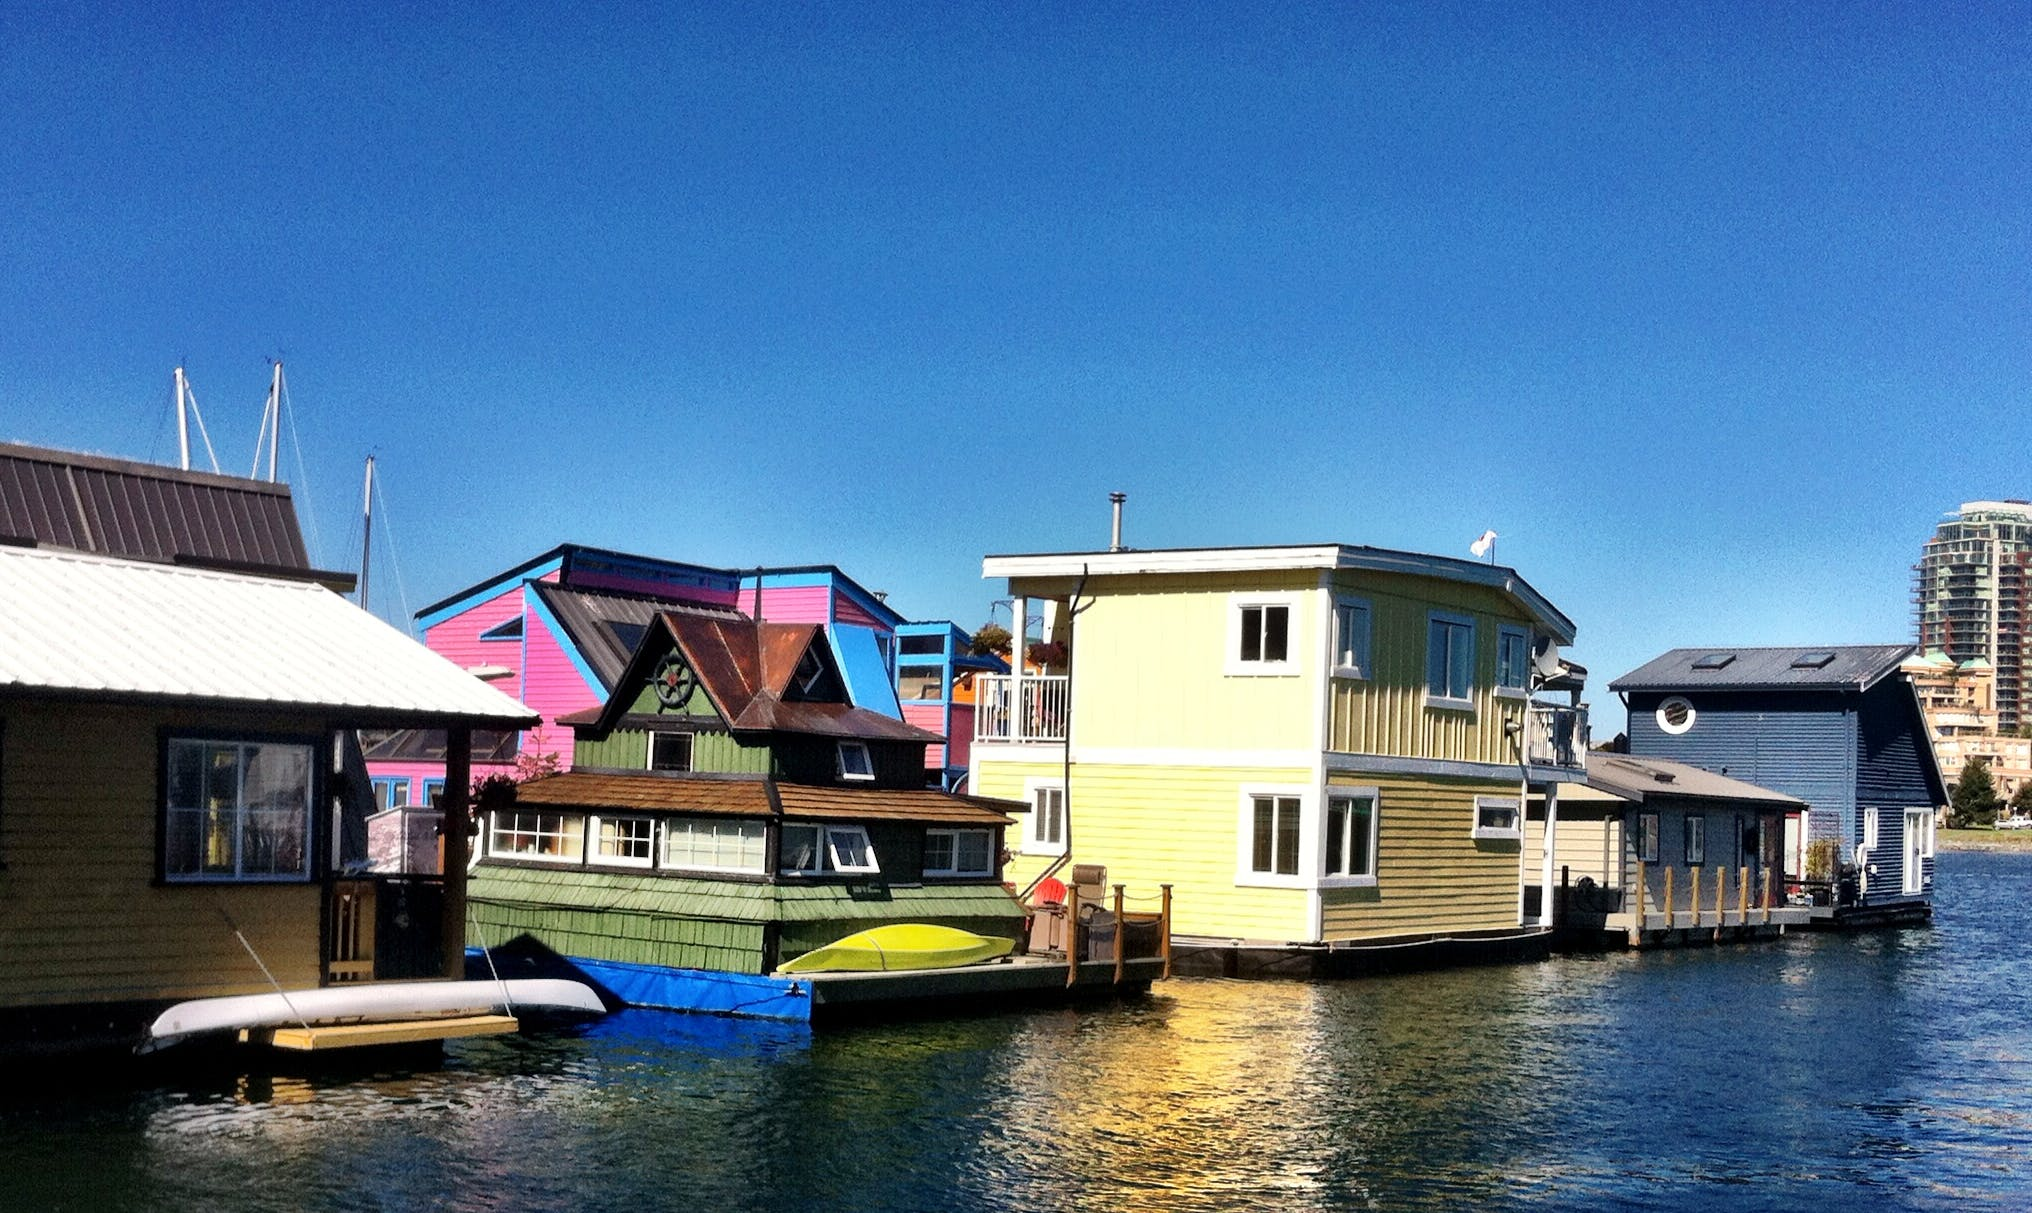 Free stock photo of boats, house, dock, Fisherman's warf